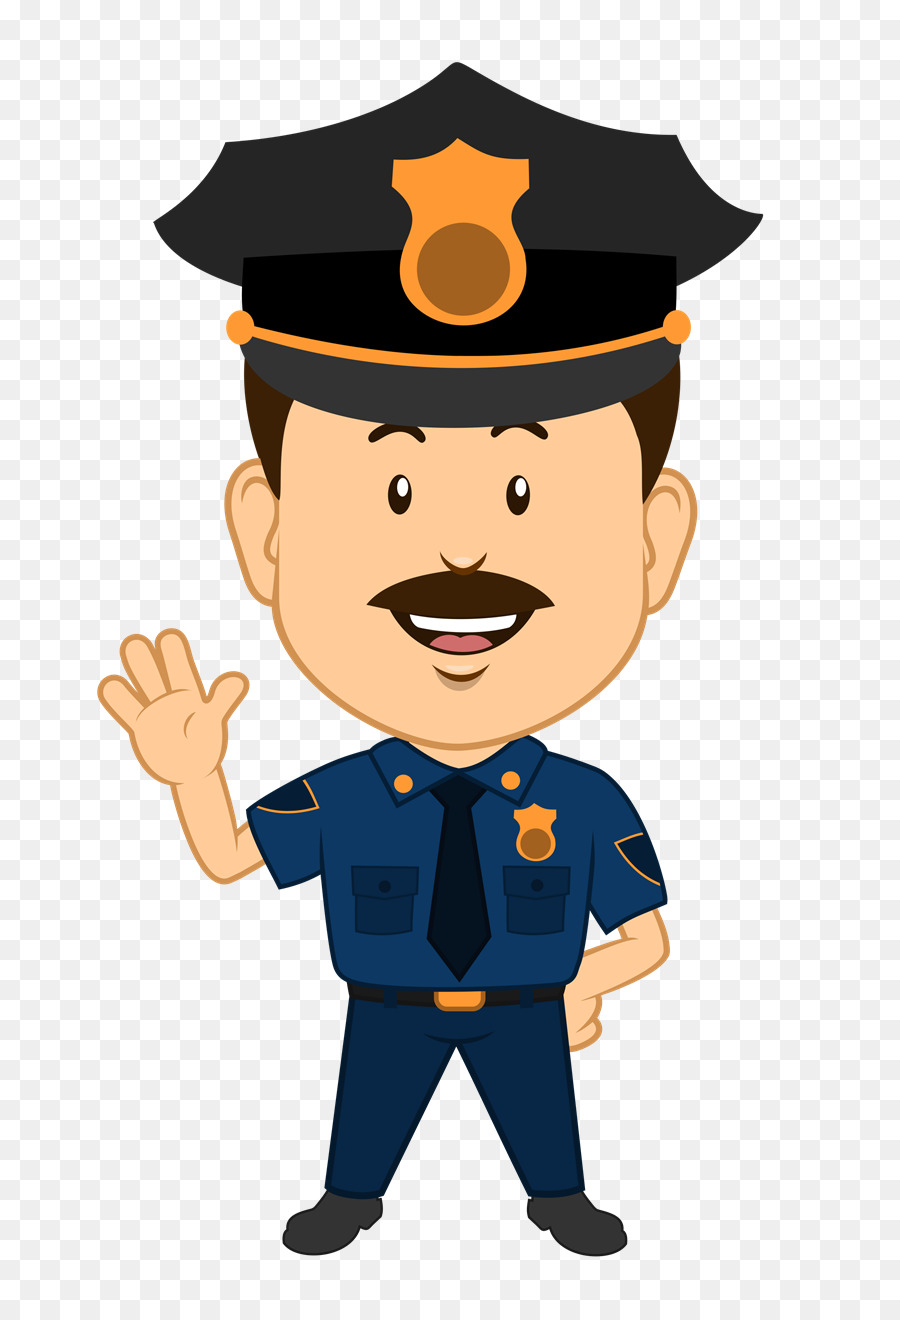 police officer free content public domain clip art police cliparts rh kisspng com police clip art for kids police clip art free images